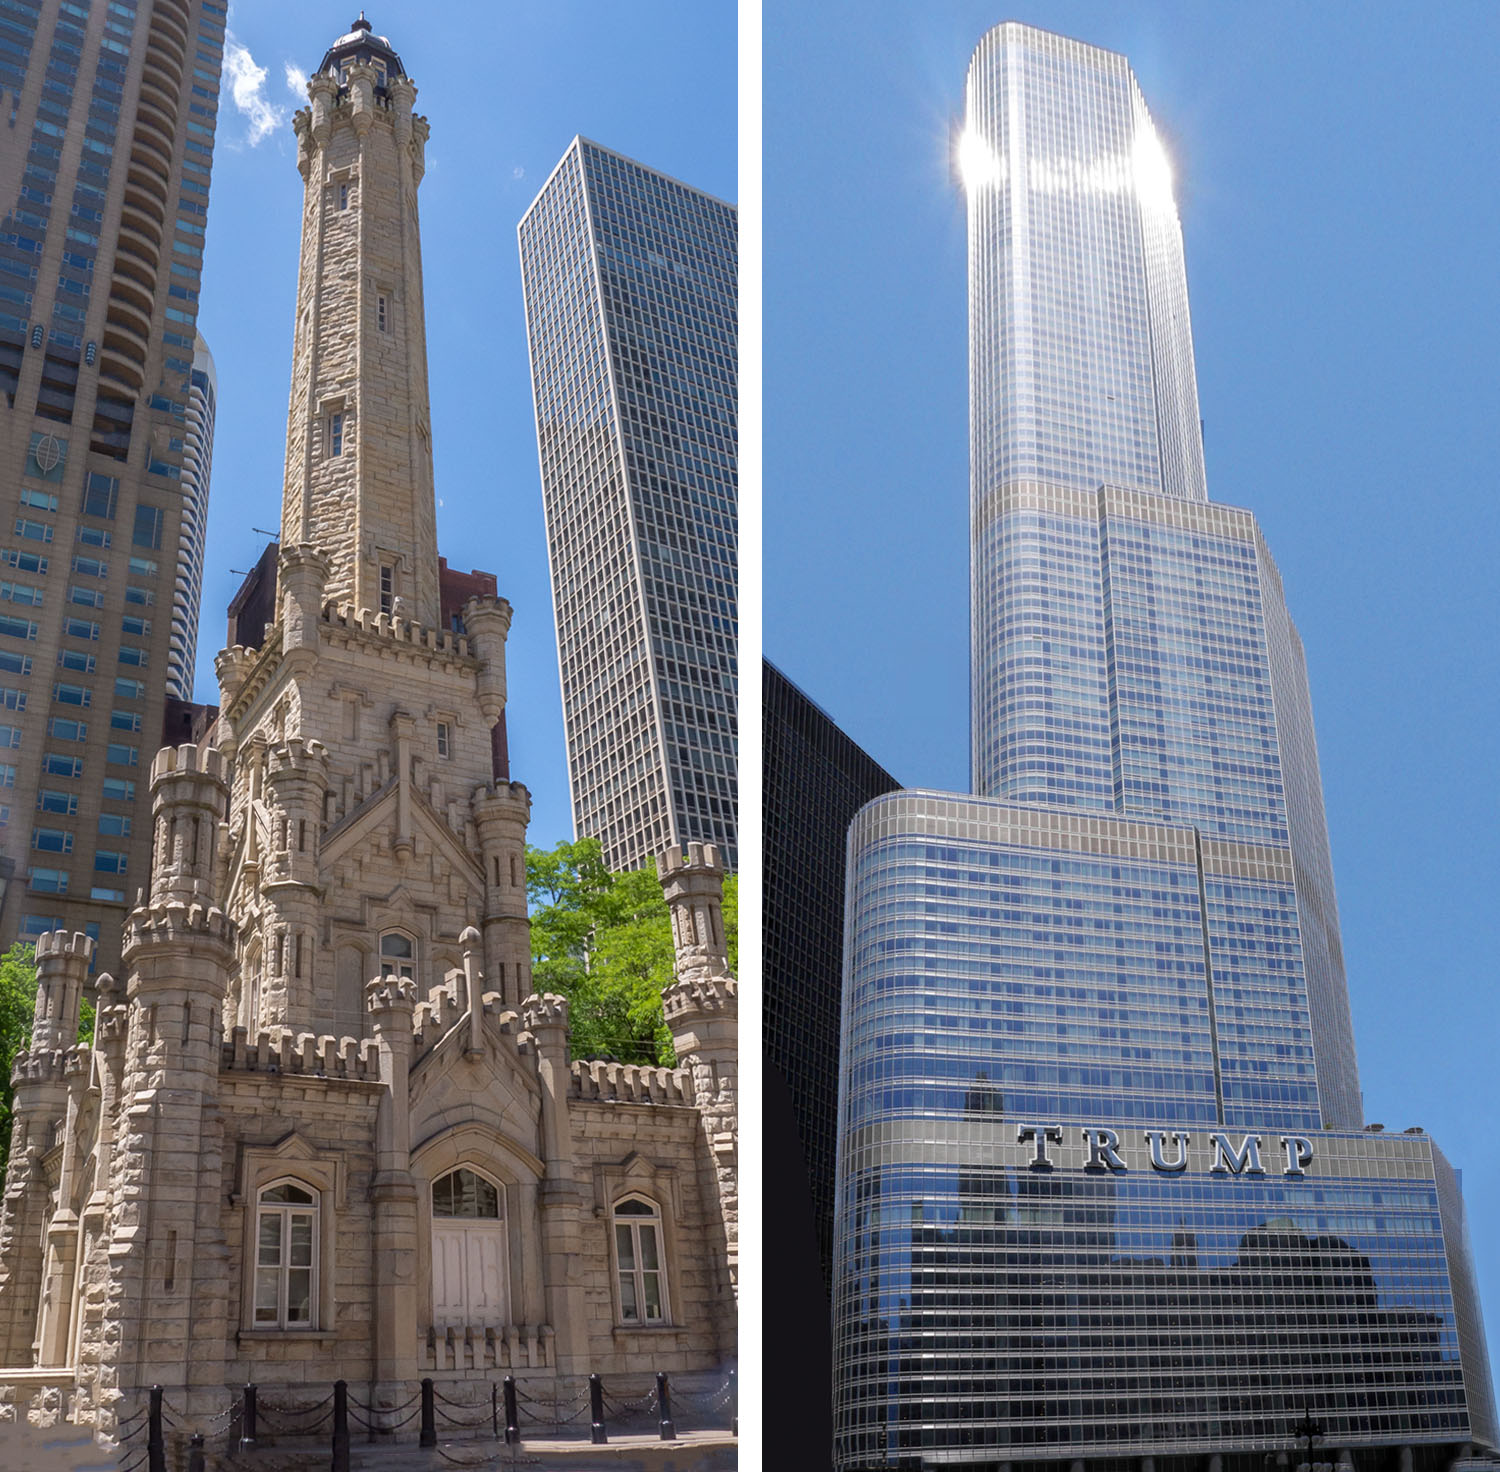 Image: The 19th century stone structure of the Chicago Water Tower stands in contrast to the gleamin...